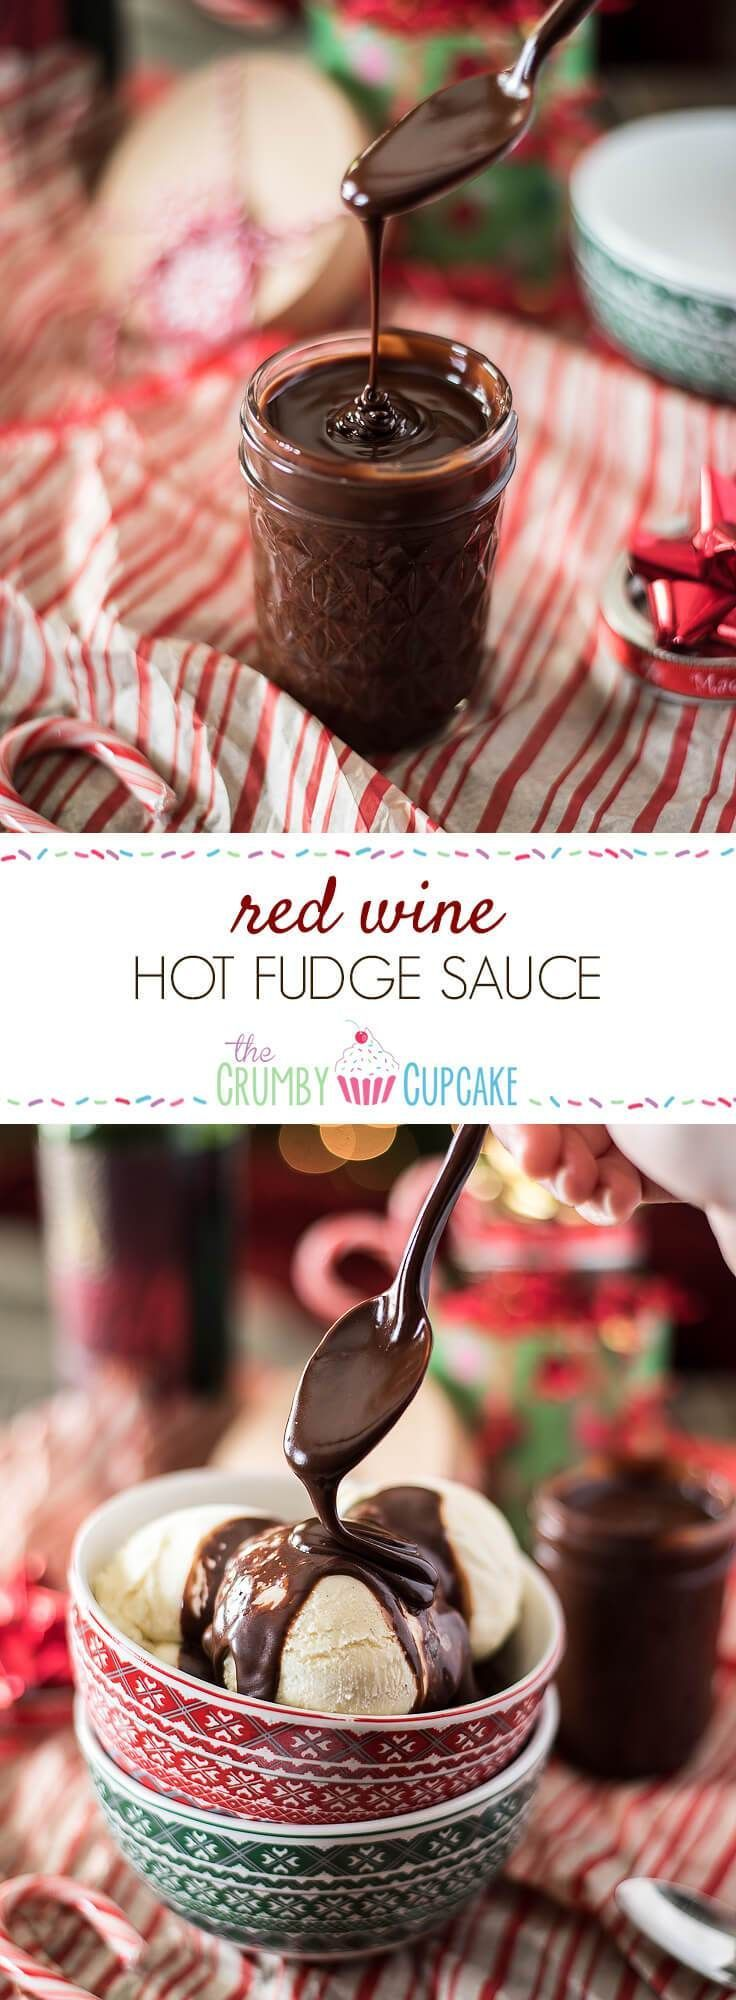 Red Wine Hot Fudge Sauce is a great gift for chocolate and vino lovers alike - perfect for those bowls of ice cream that just need a little extra something special! #redwine #hotfudge #sauce #fudge #recipe #christmas #gift #wine #holiday #dessert